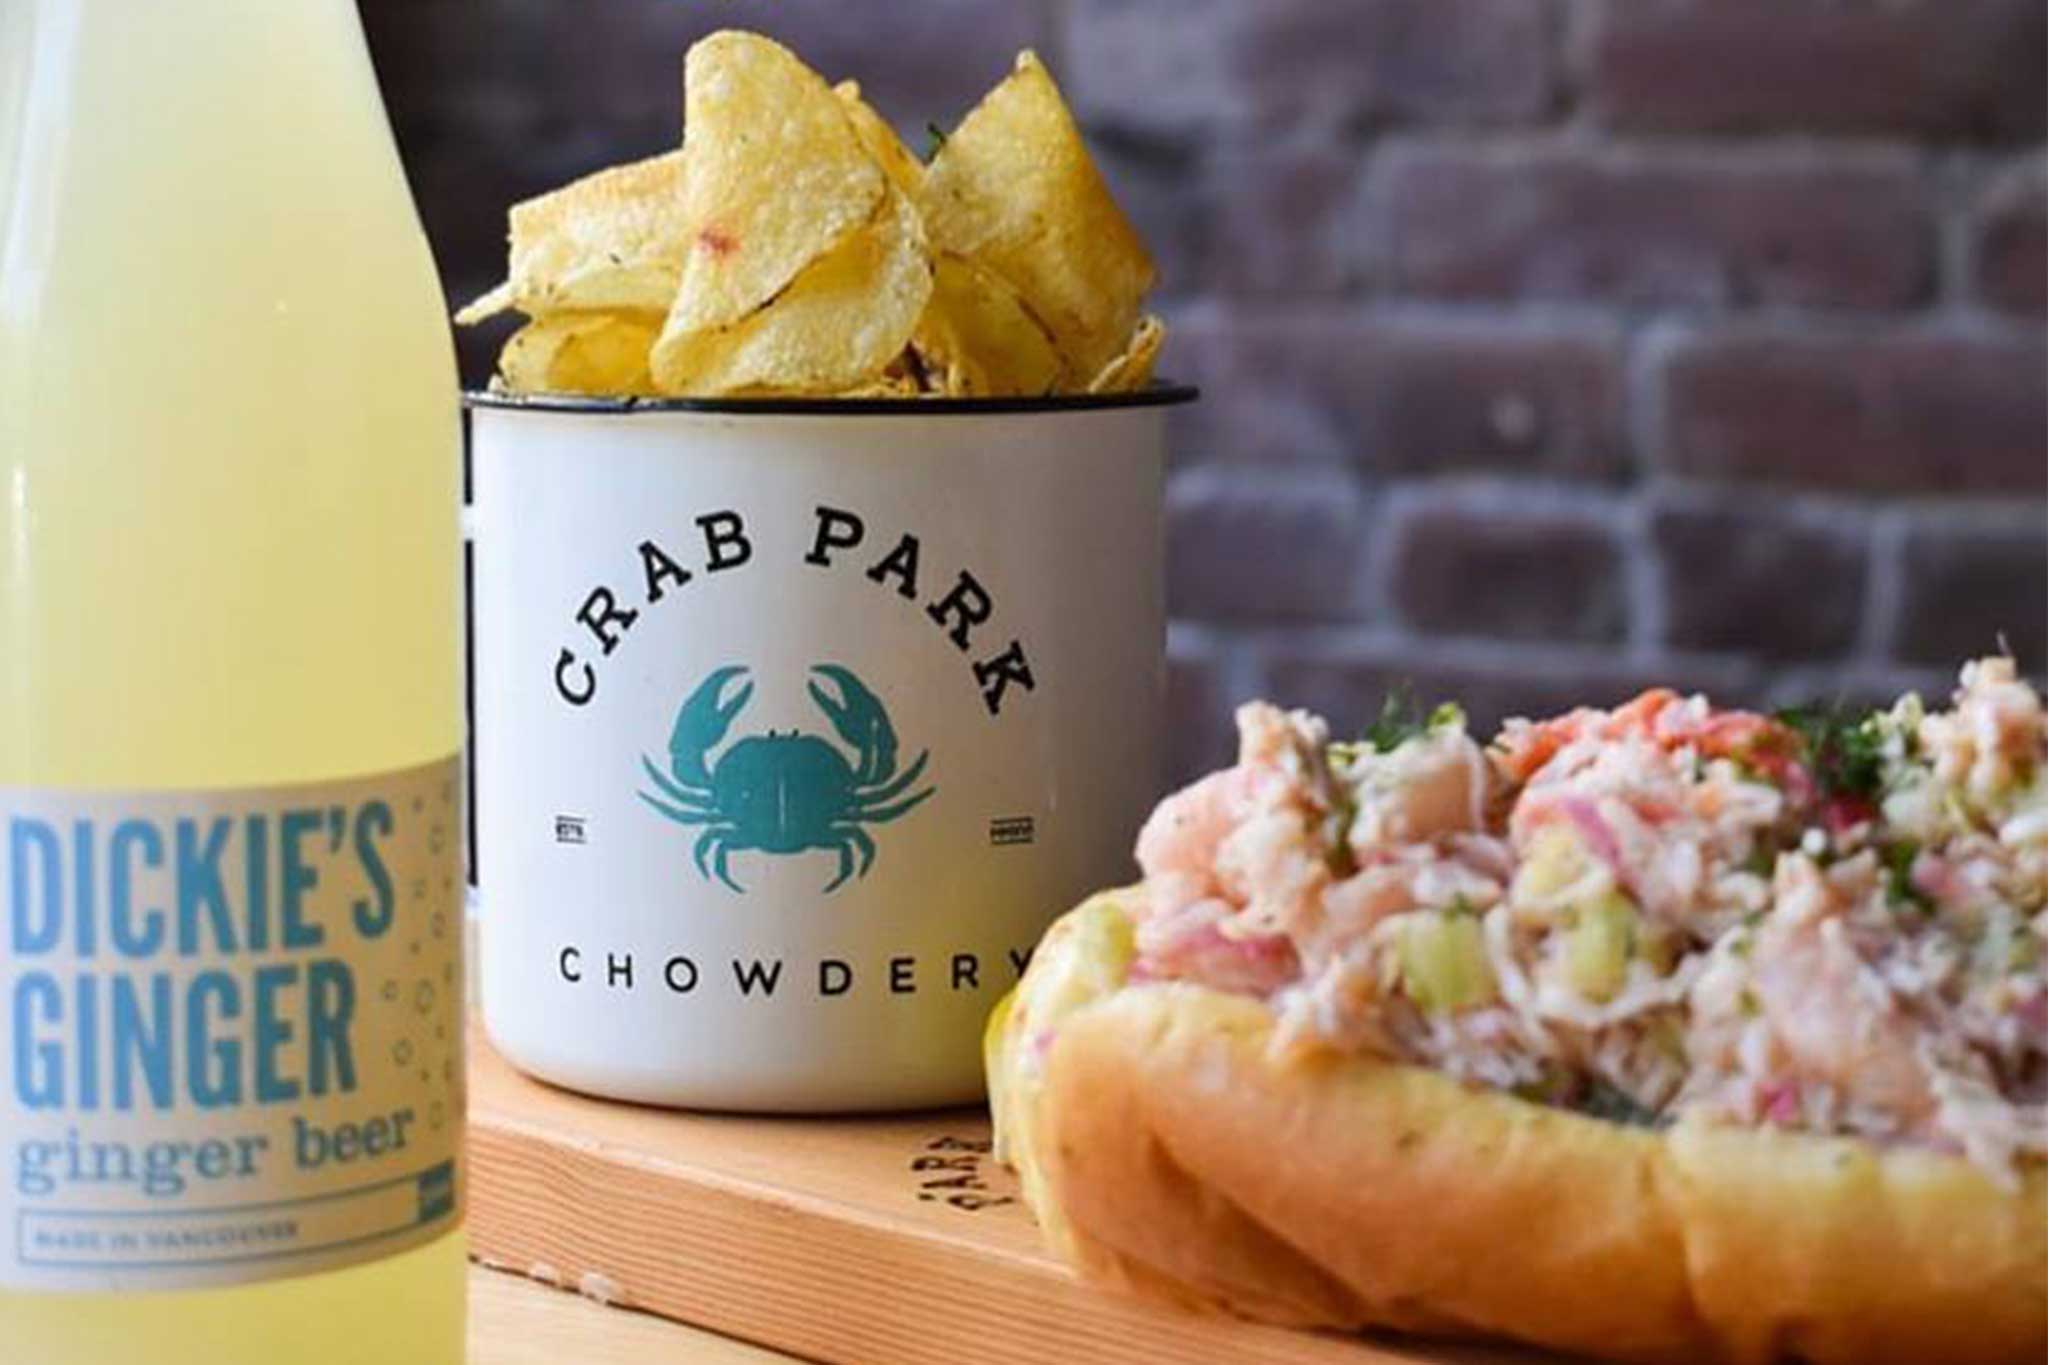 Inside The Kitchen: Crab Park Chowdery